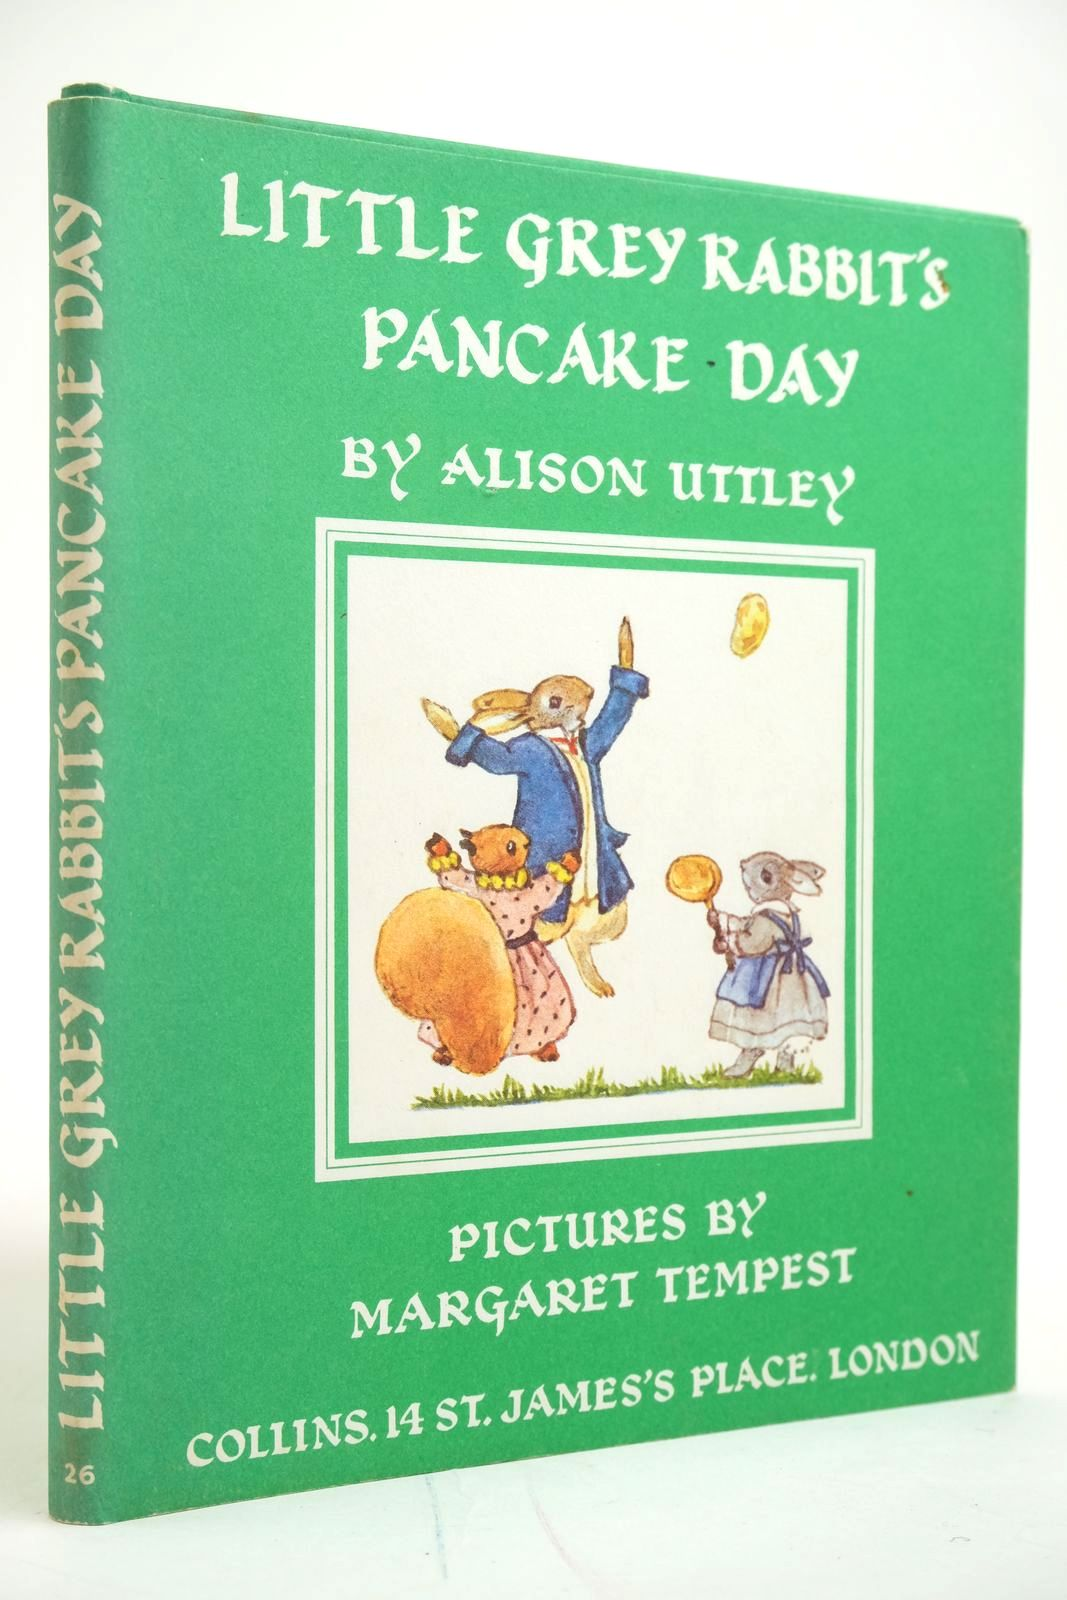 Photo of LITTLE GREY RABBIT'S PANCAKE DAY written by Uttley, Alison illustrated by Tempest, Margaret published by Collins (STOCK CODE: 2135089)  for sale by Stella & Rose's Books